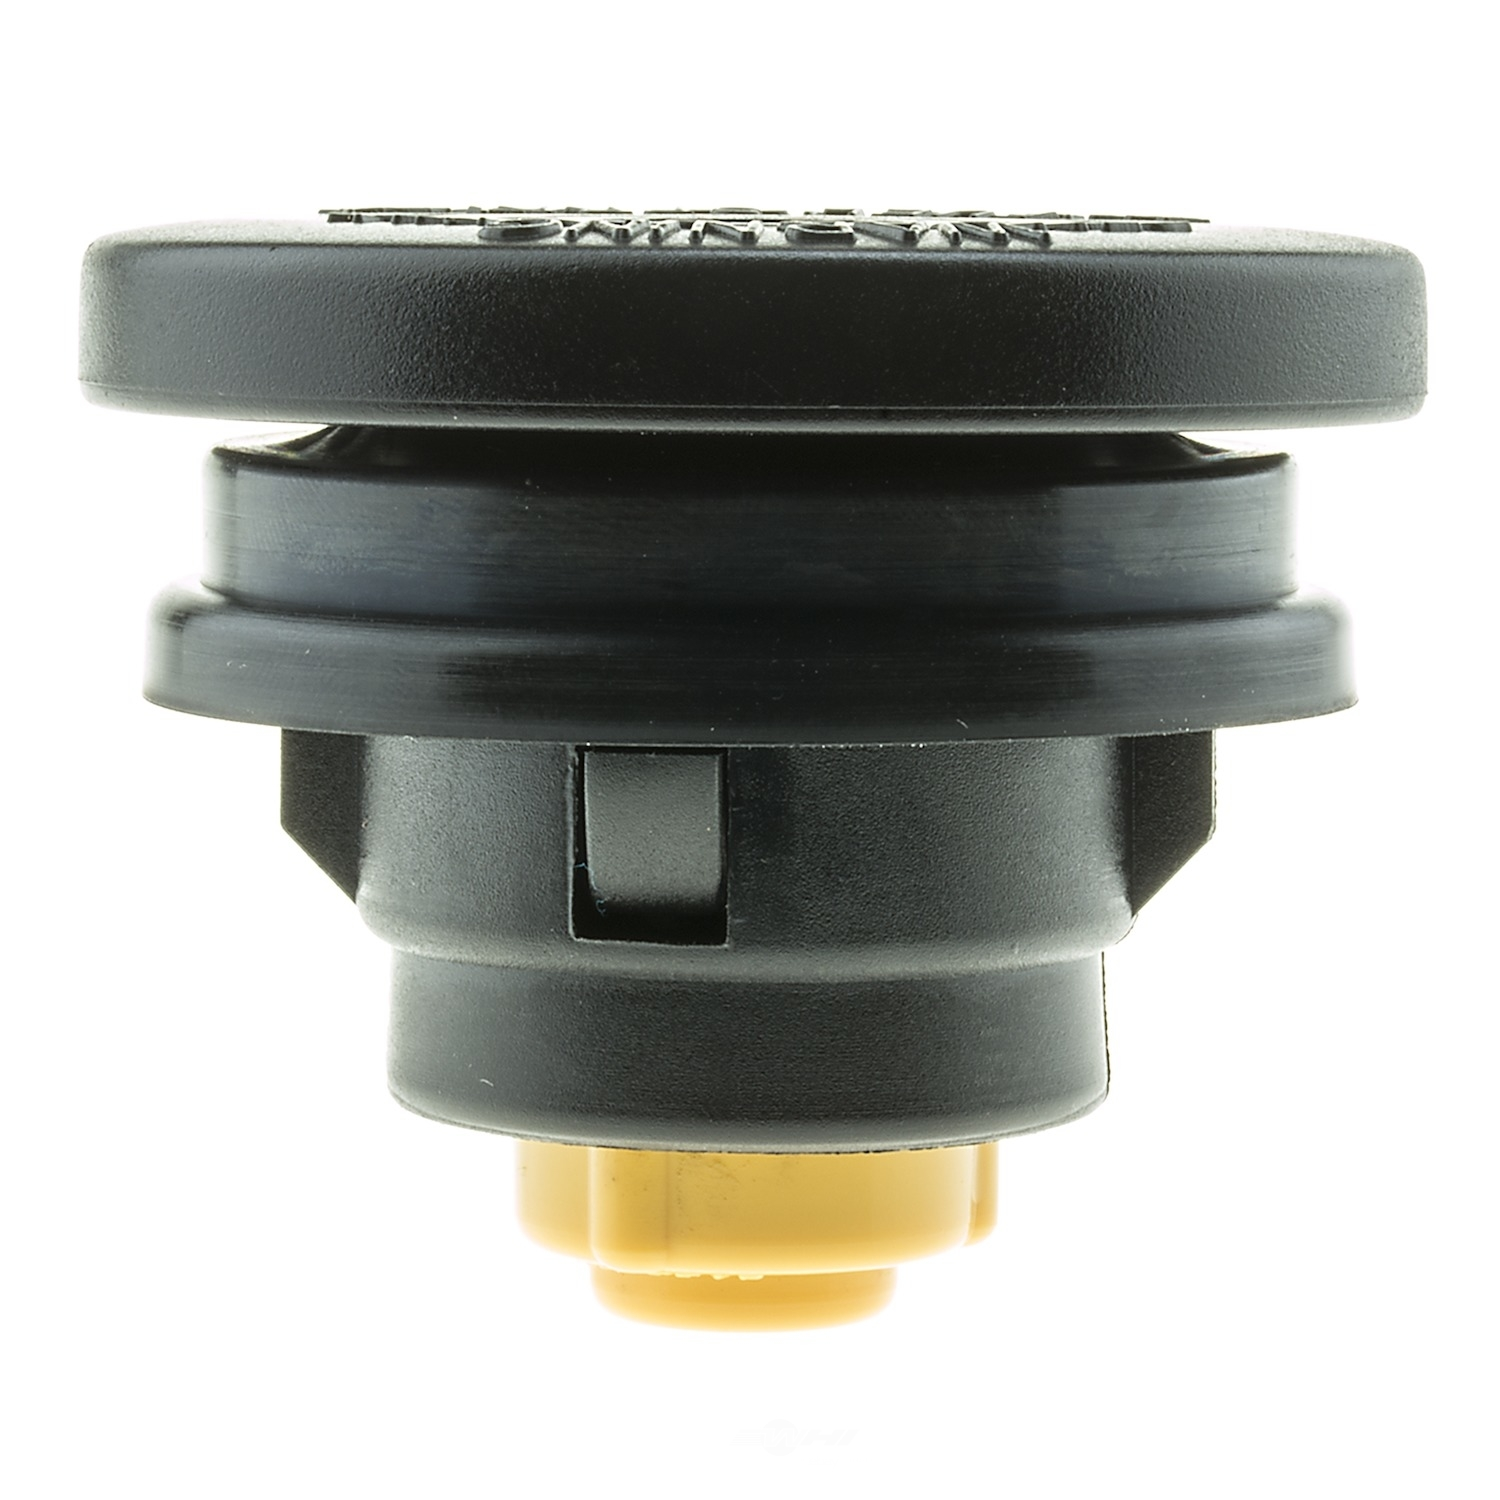 STANT - Regular Locking Fuel Cap - STN 10491